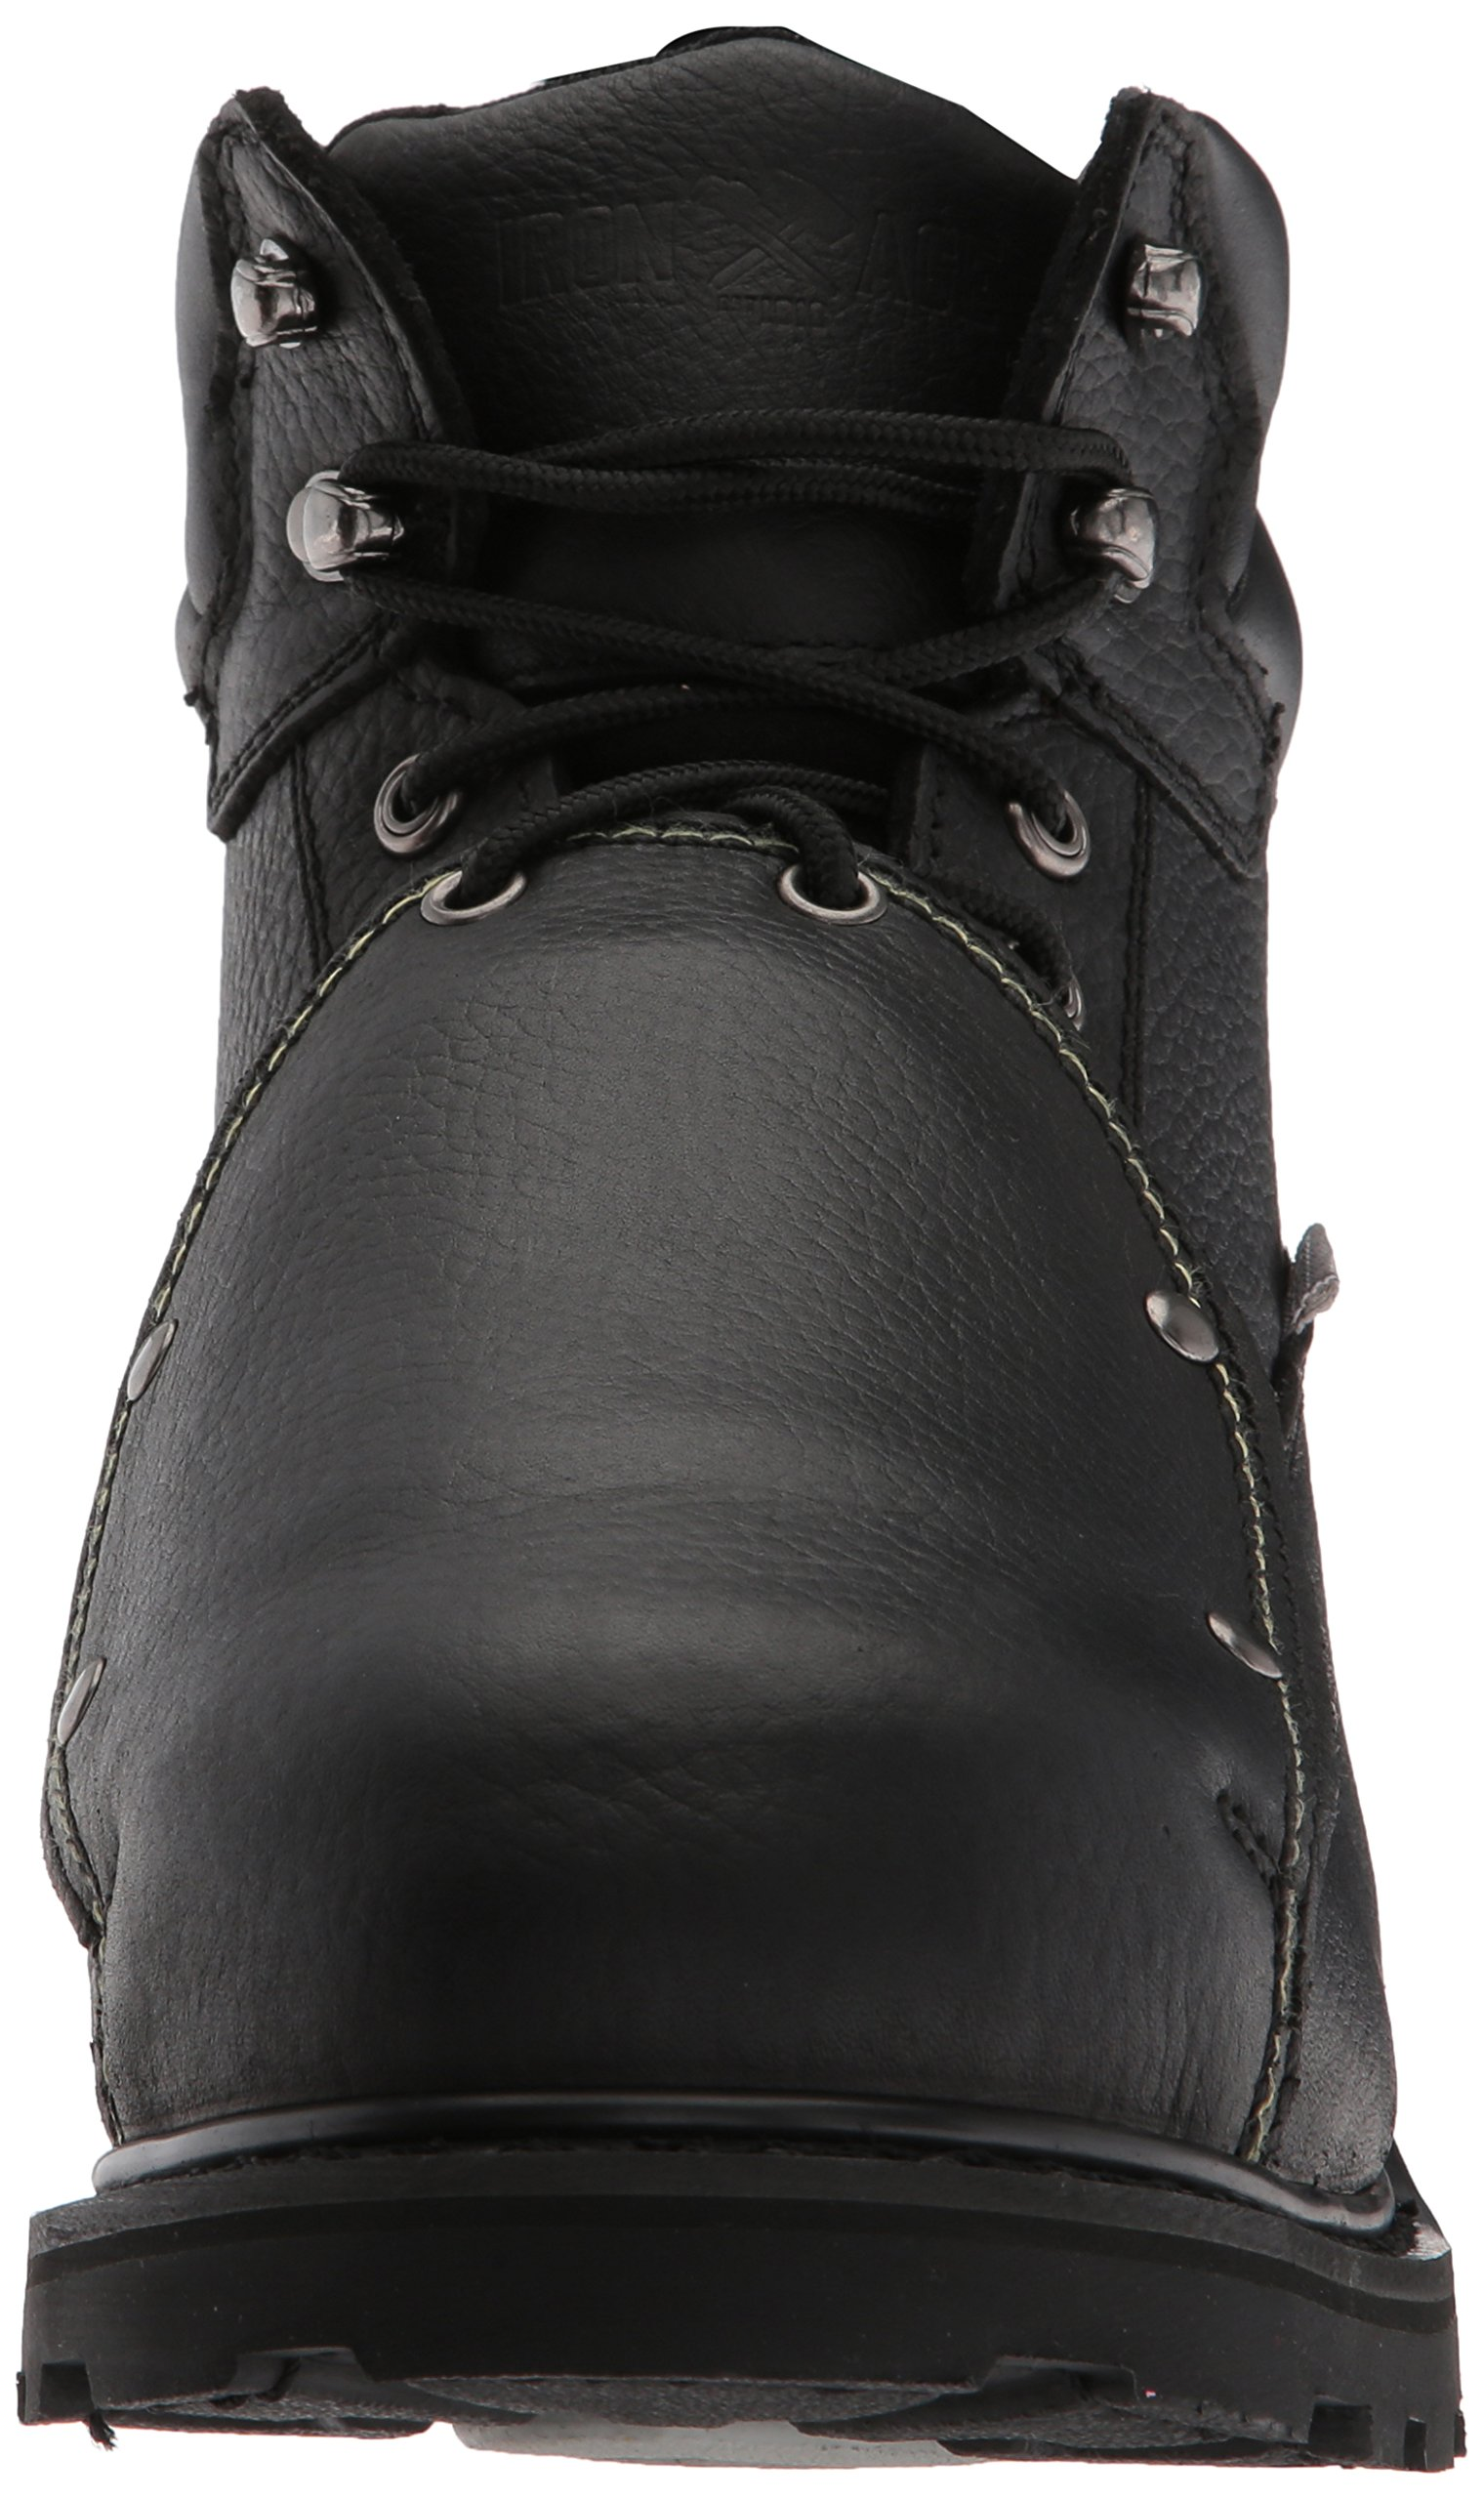 Iron Age Men's Ia5016 Ground Breaker Industrial and Construction Shoe, Black, 10.5 M US by Iron Age (Image #4)